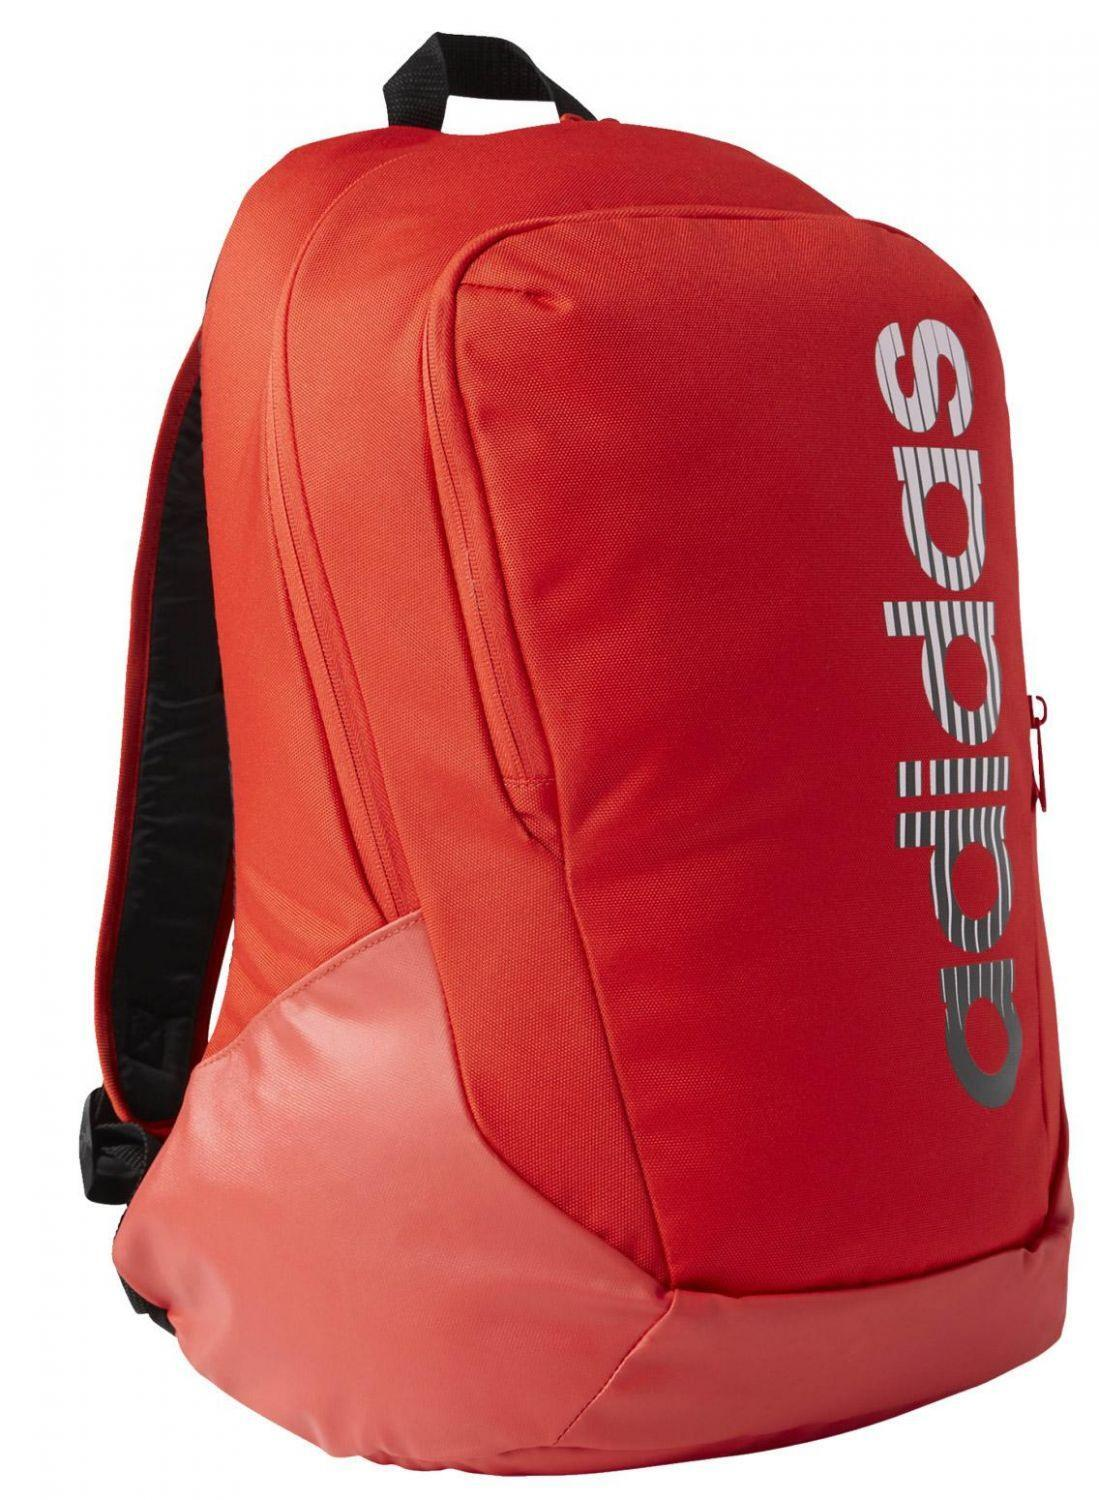 adidas-backpack-neopack-rucksack-farbe-core-red-s17-